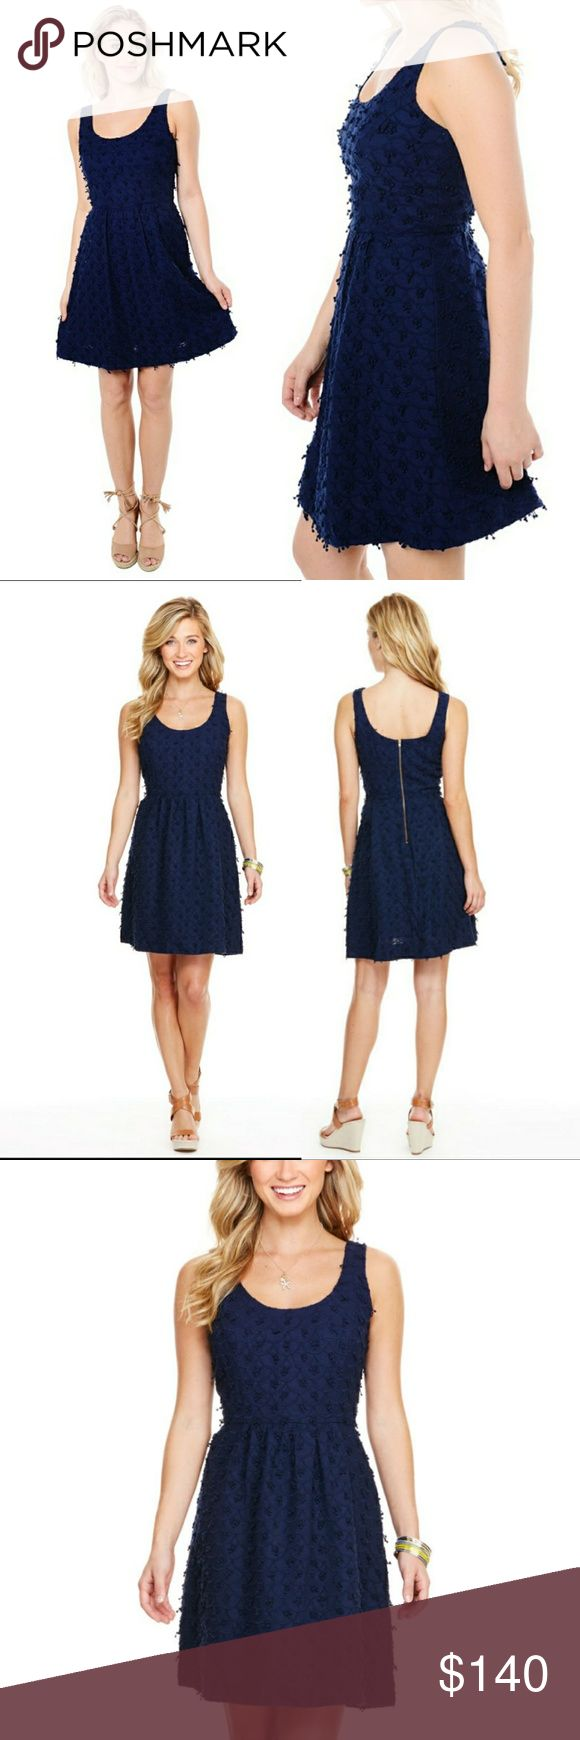 Vineyard Vines Nautical Scallop Fit n Flare Dress Up for sale Brand new with tags Vineyard Vines Nautical Scallop Fit n Flare Dress.  Size 10  MSRP $198 Vineyard Vines Dresses Midi